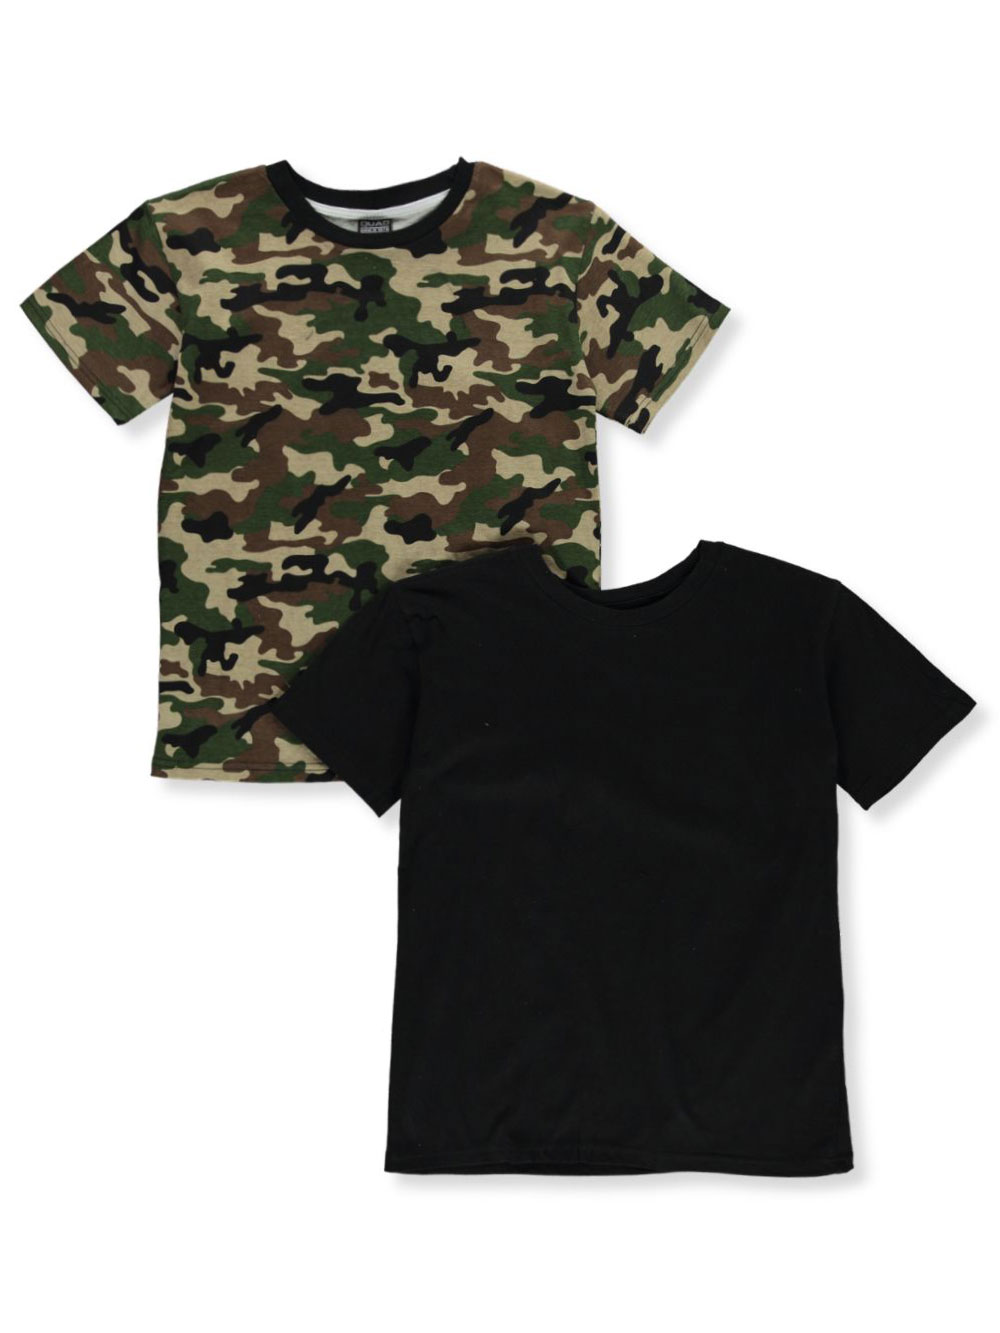 Boys Black Camo T-Shirts